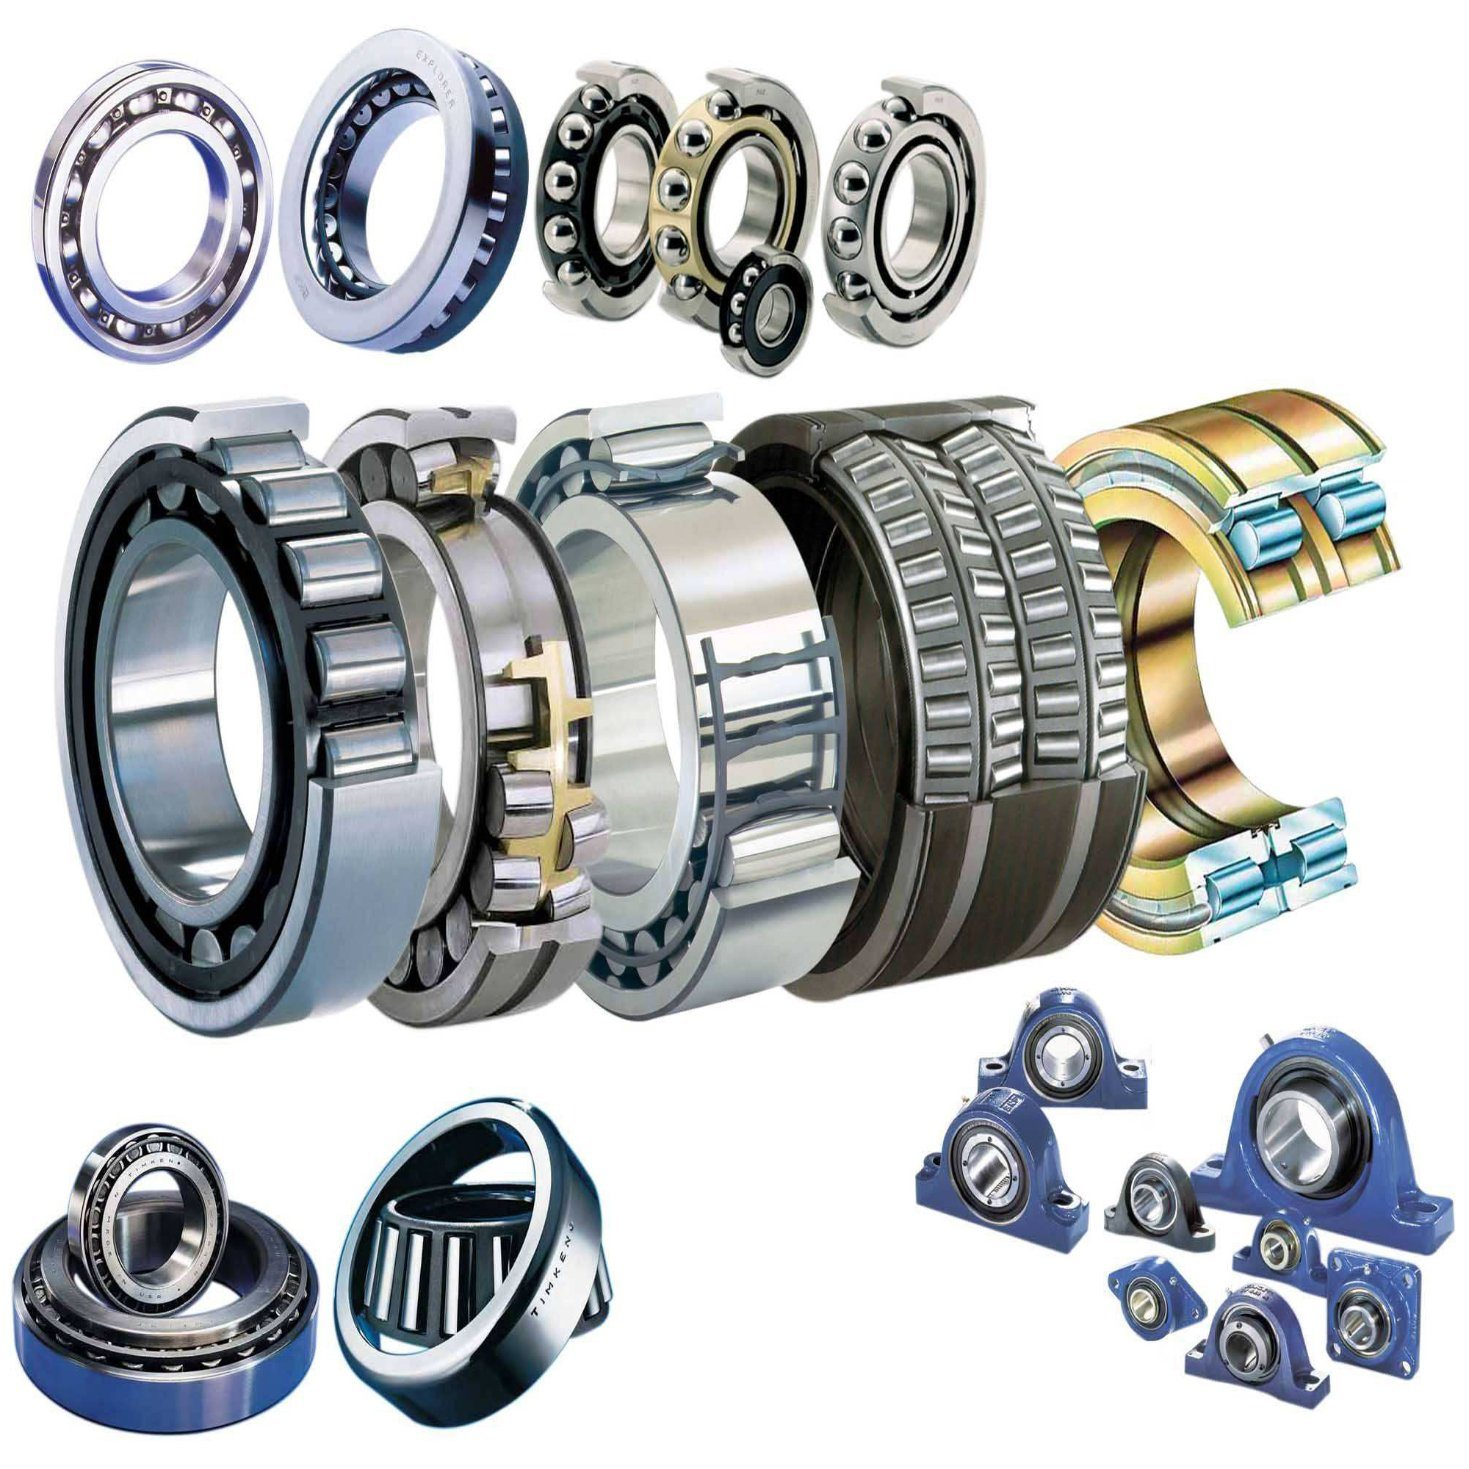 Agricultural Pillow Block Bearing Series Deep Groove Ball Bearing with Housing Fits Ball Bearing Units (UC UCF UCF)